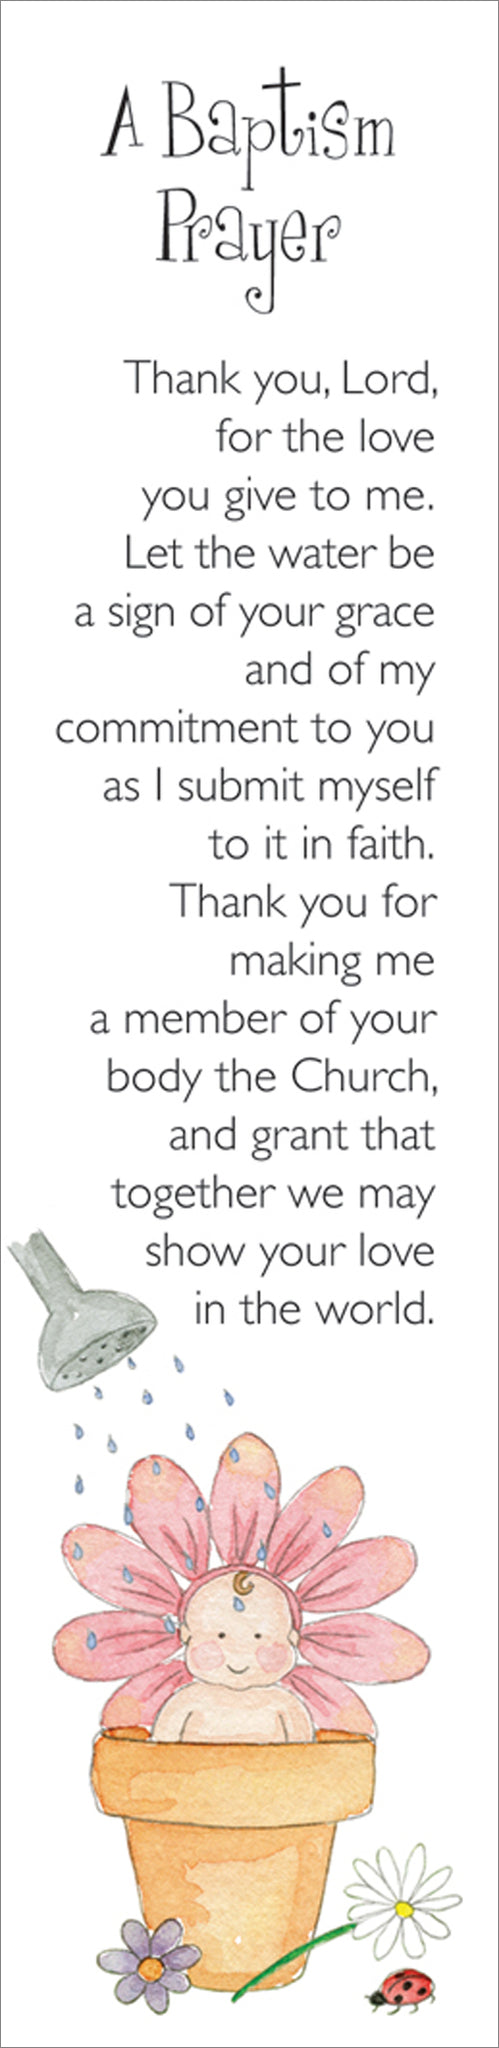 Bookmarks - A Baptism Prayer Pack  Of 10 Individual DesignBookmarks - A Baptism Prayer Pack  Of 10 Individual Design